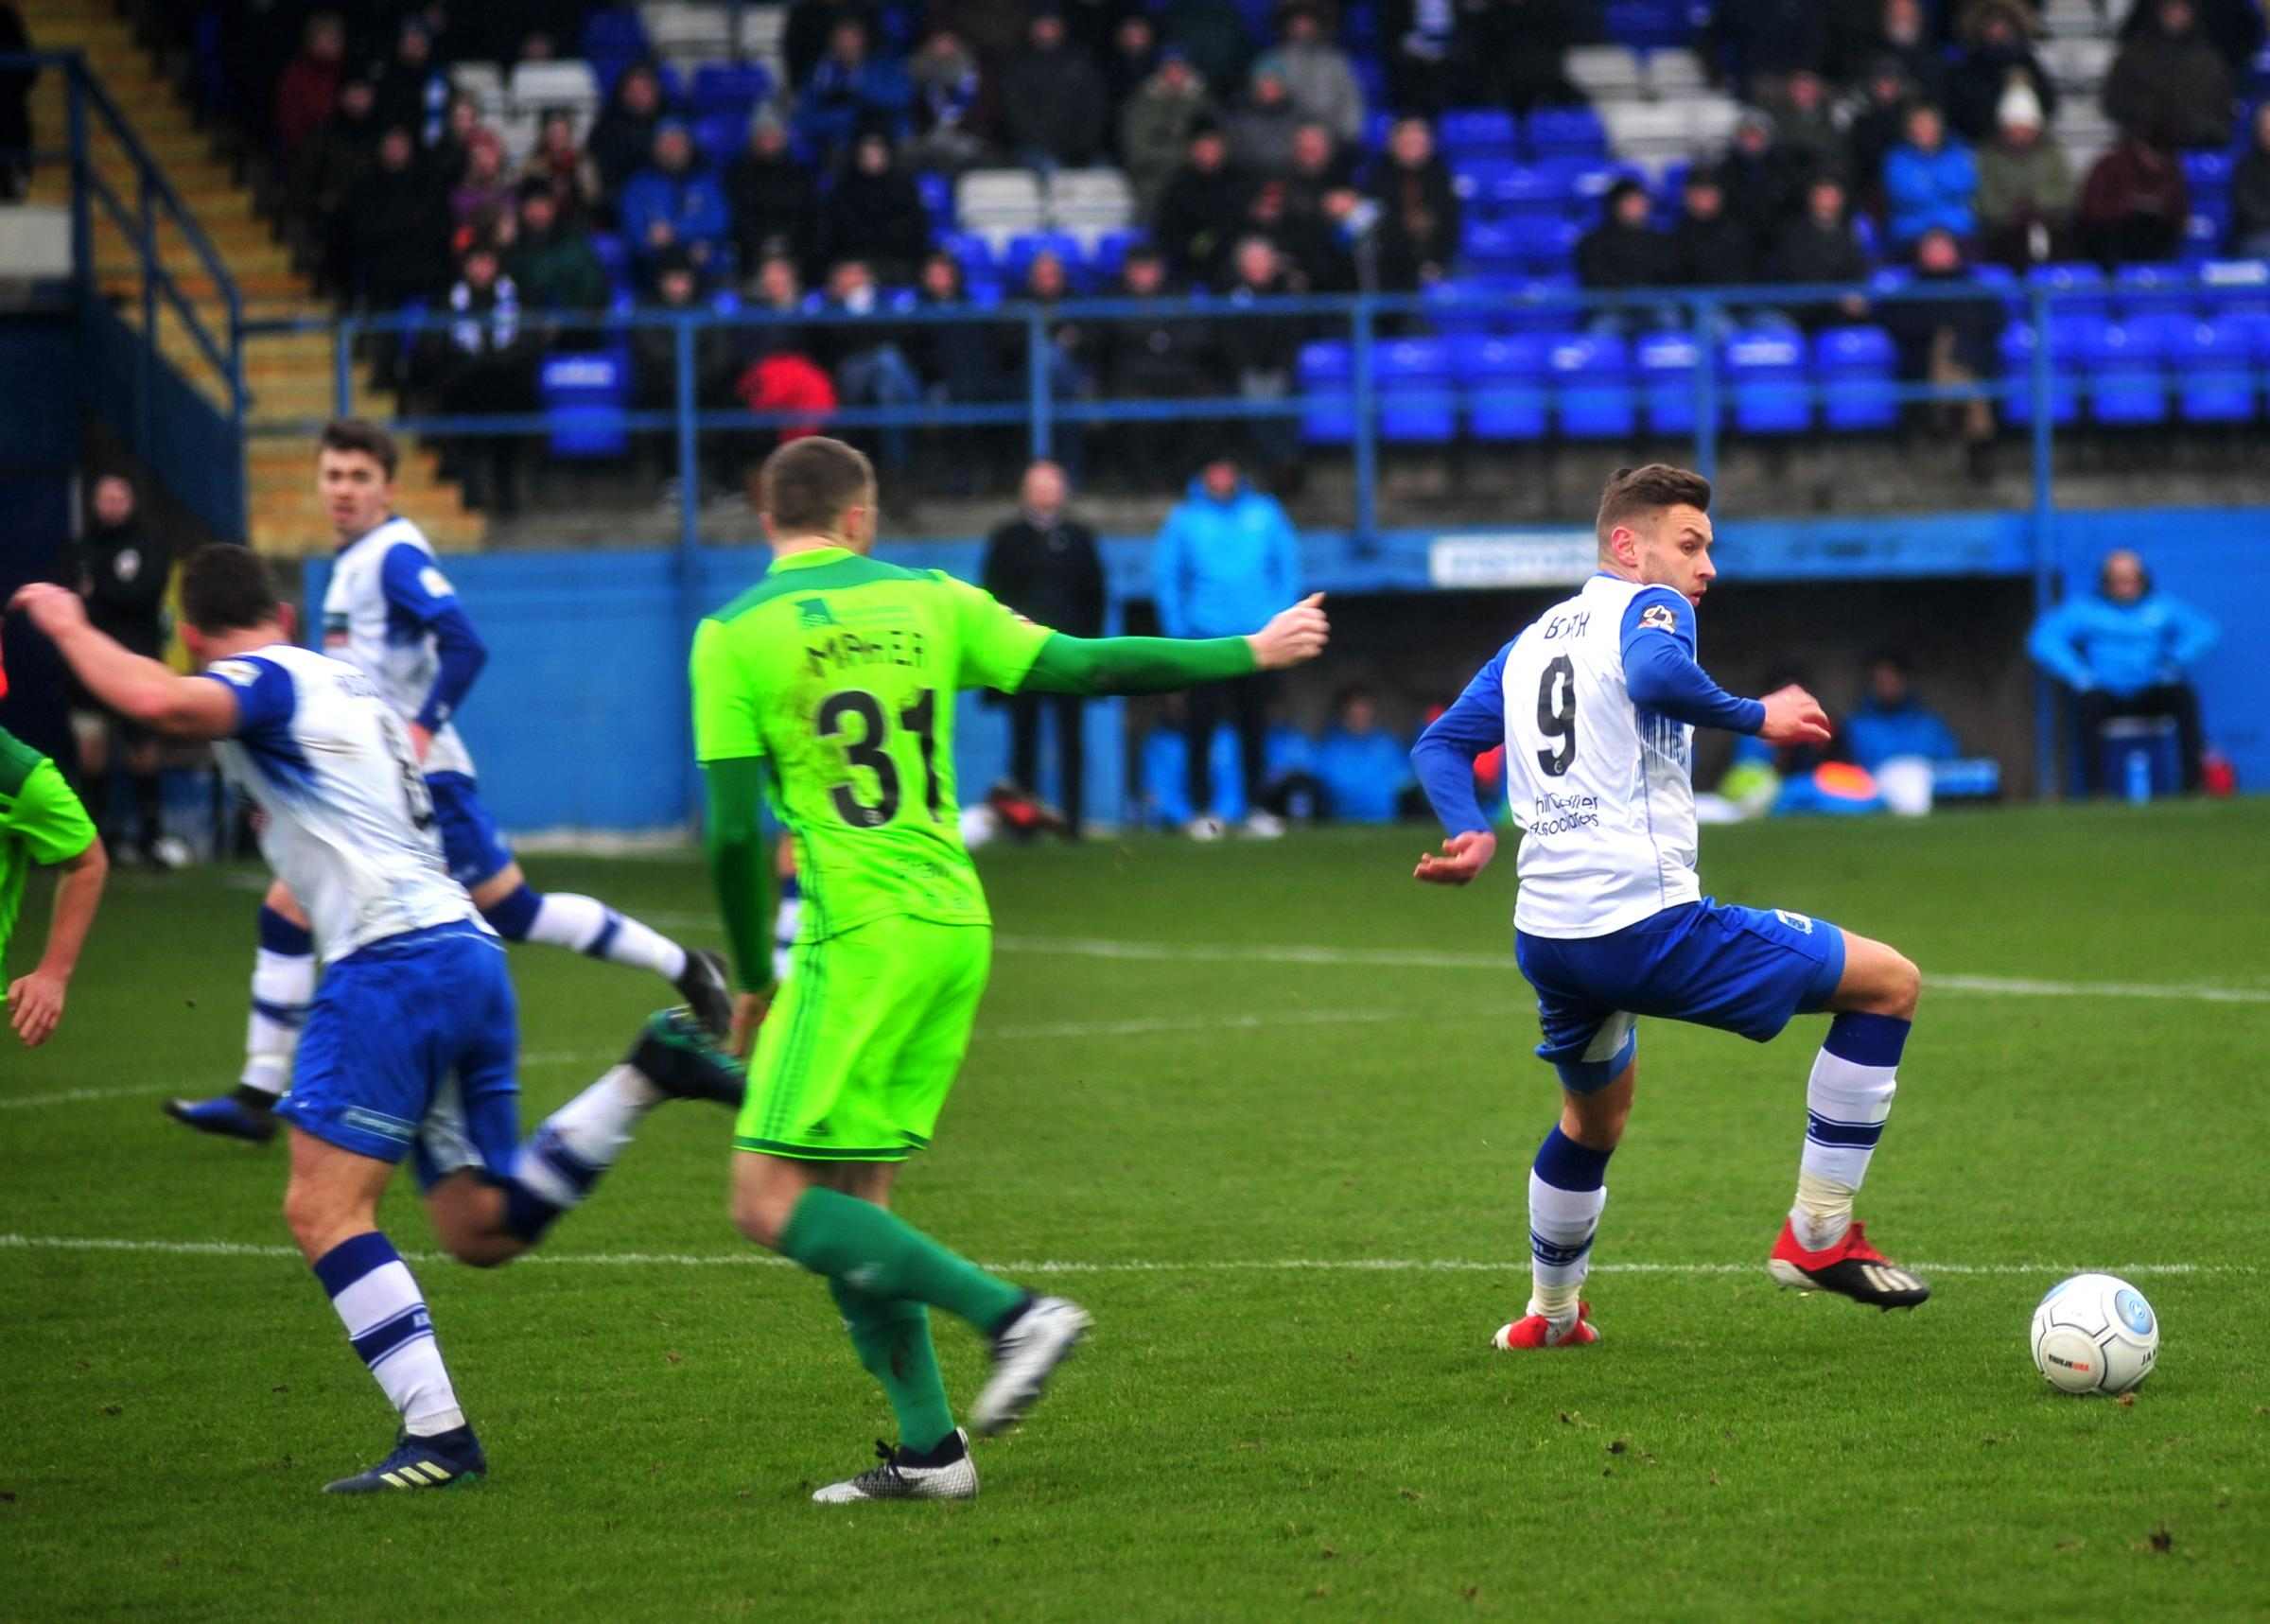 Jacob Blyth for Barrow A.F.C in their game against FC Halifax Town.